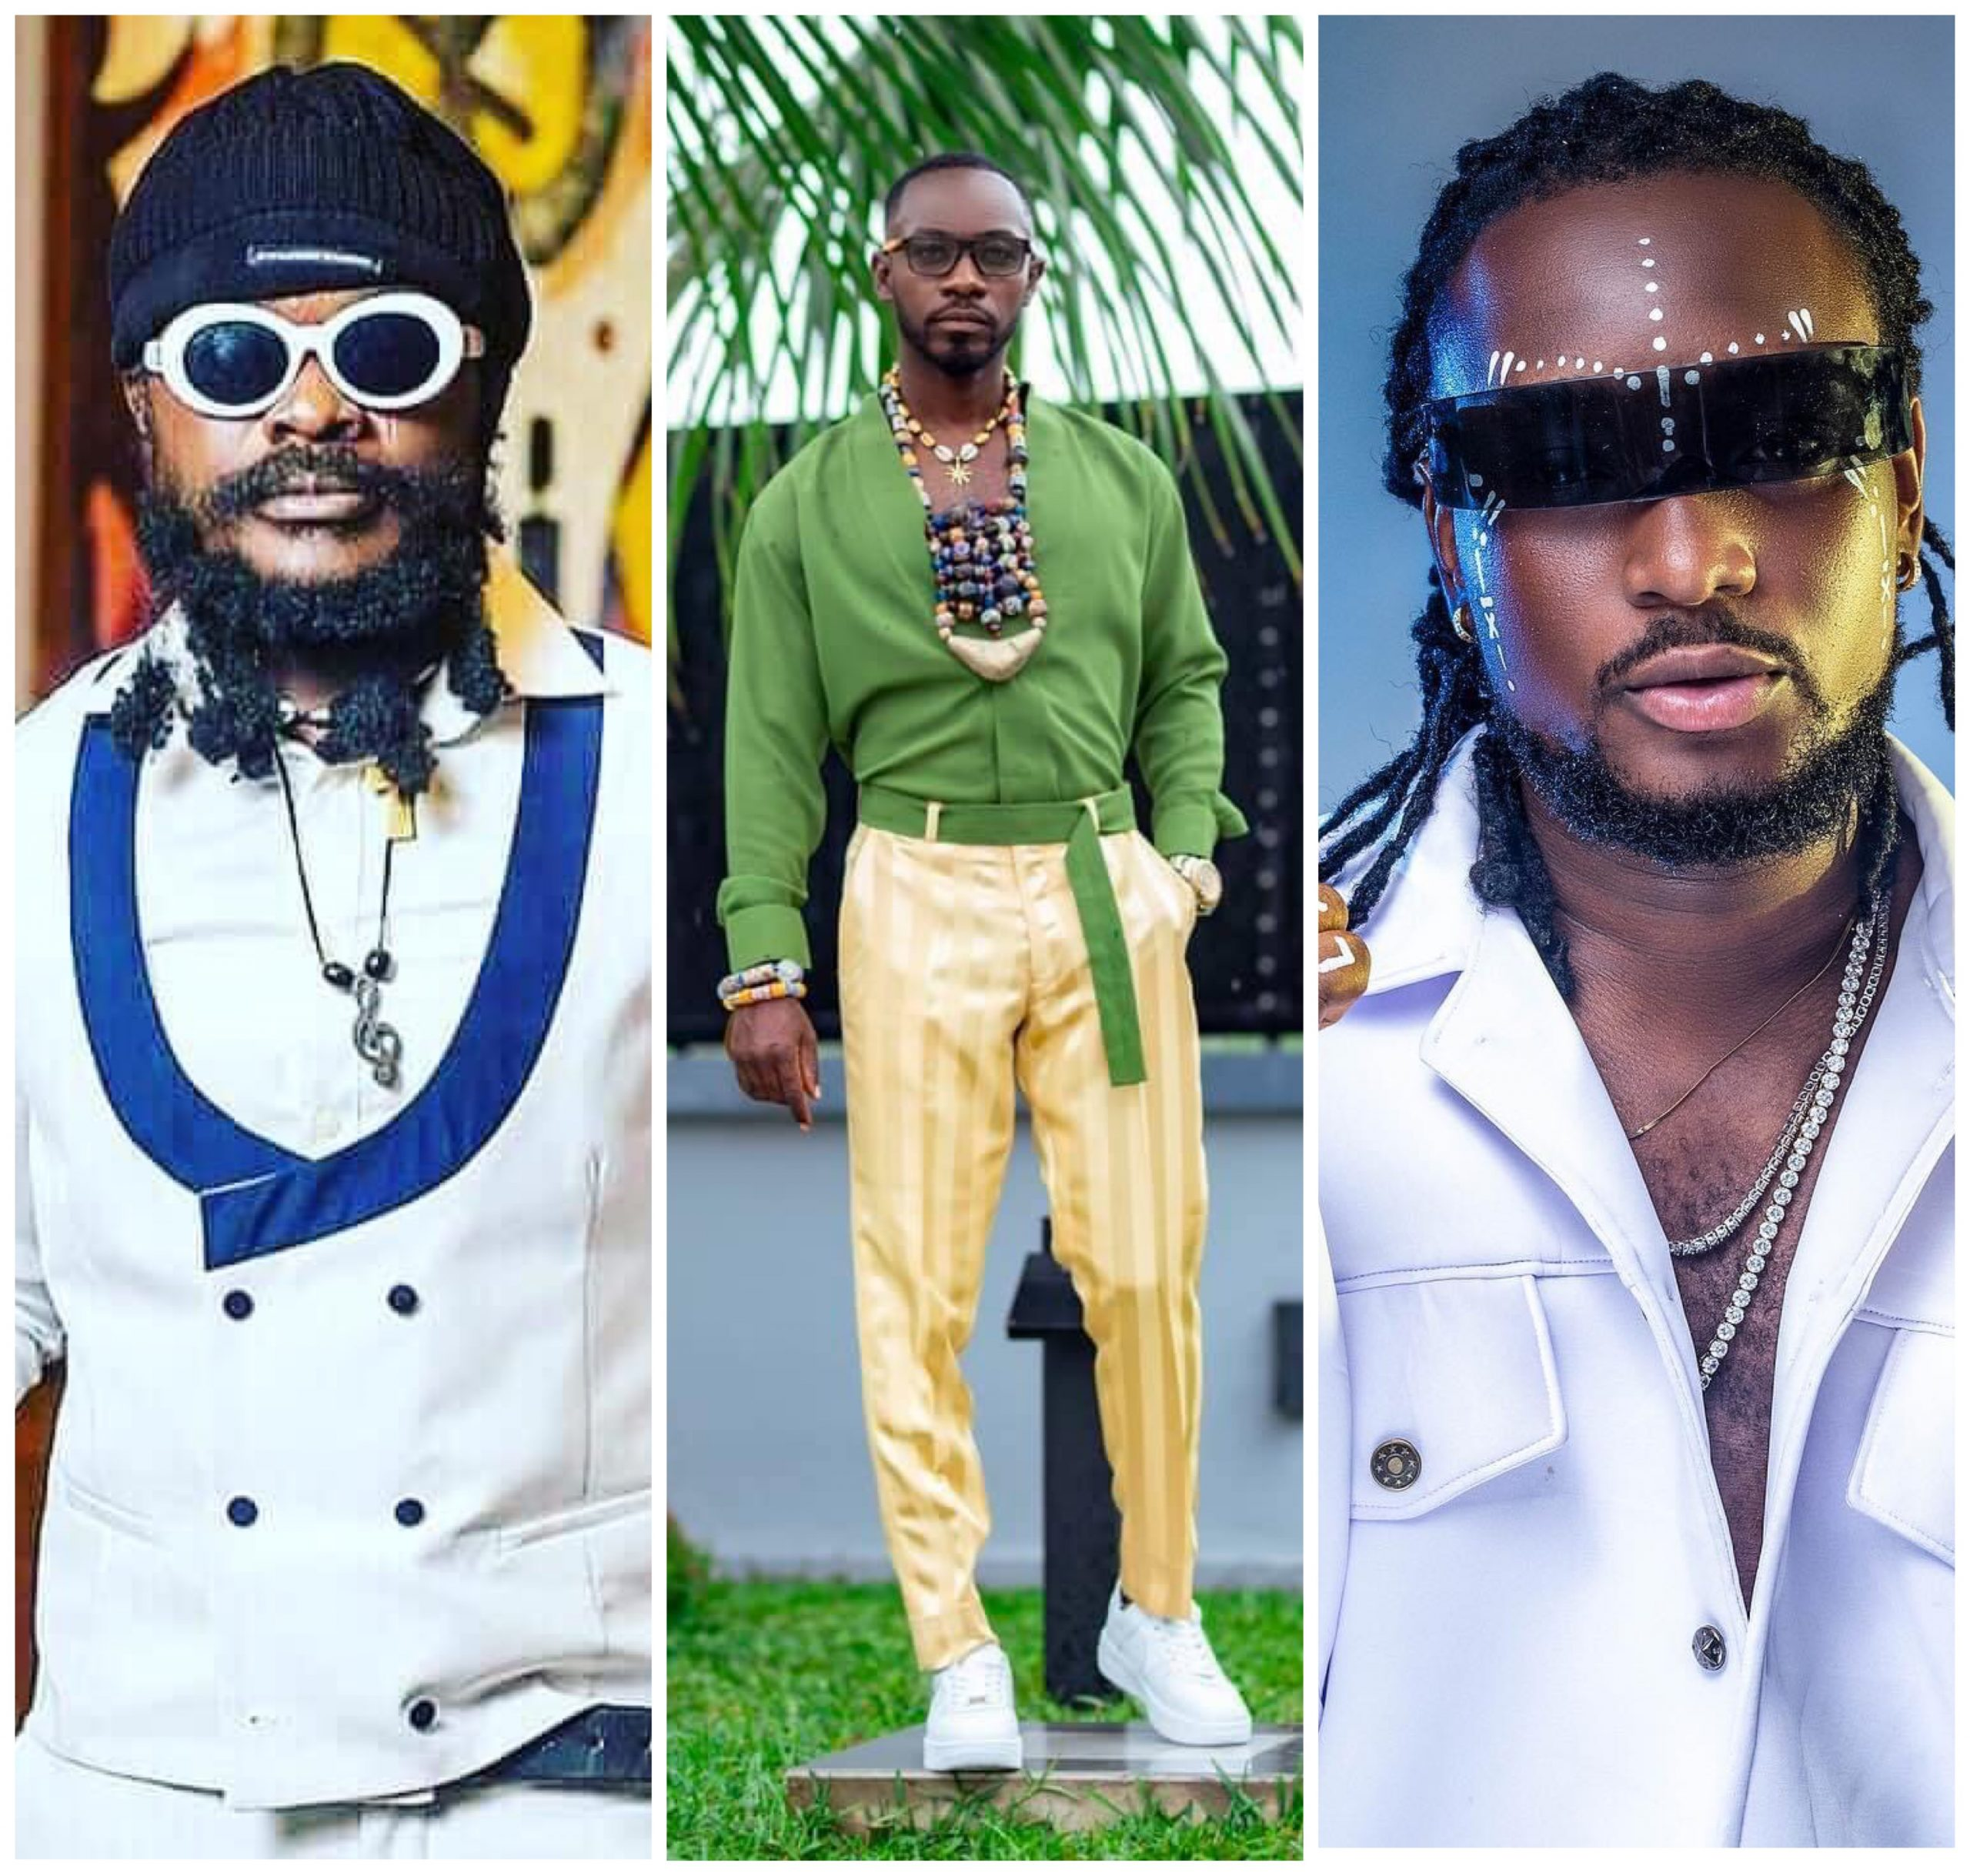 Here Is What Epixode, Okyeame Kwame, Bessa Simons And Ras Kuuku Are Saying About Who Is Winning Or Loosing The December 7 Election